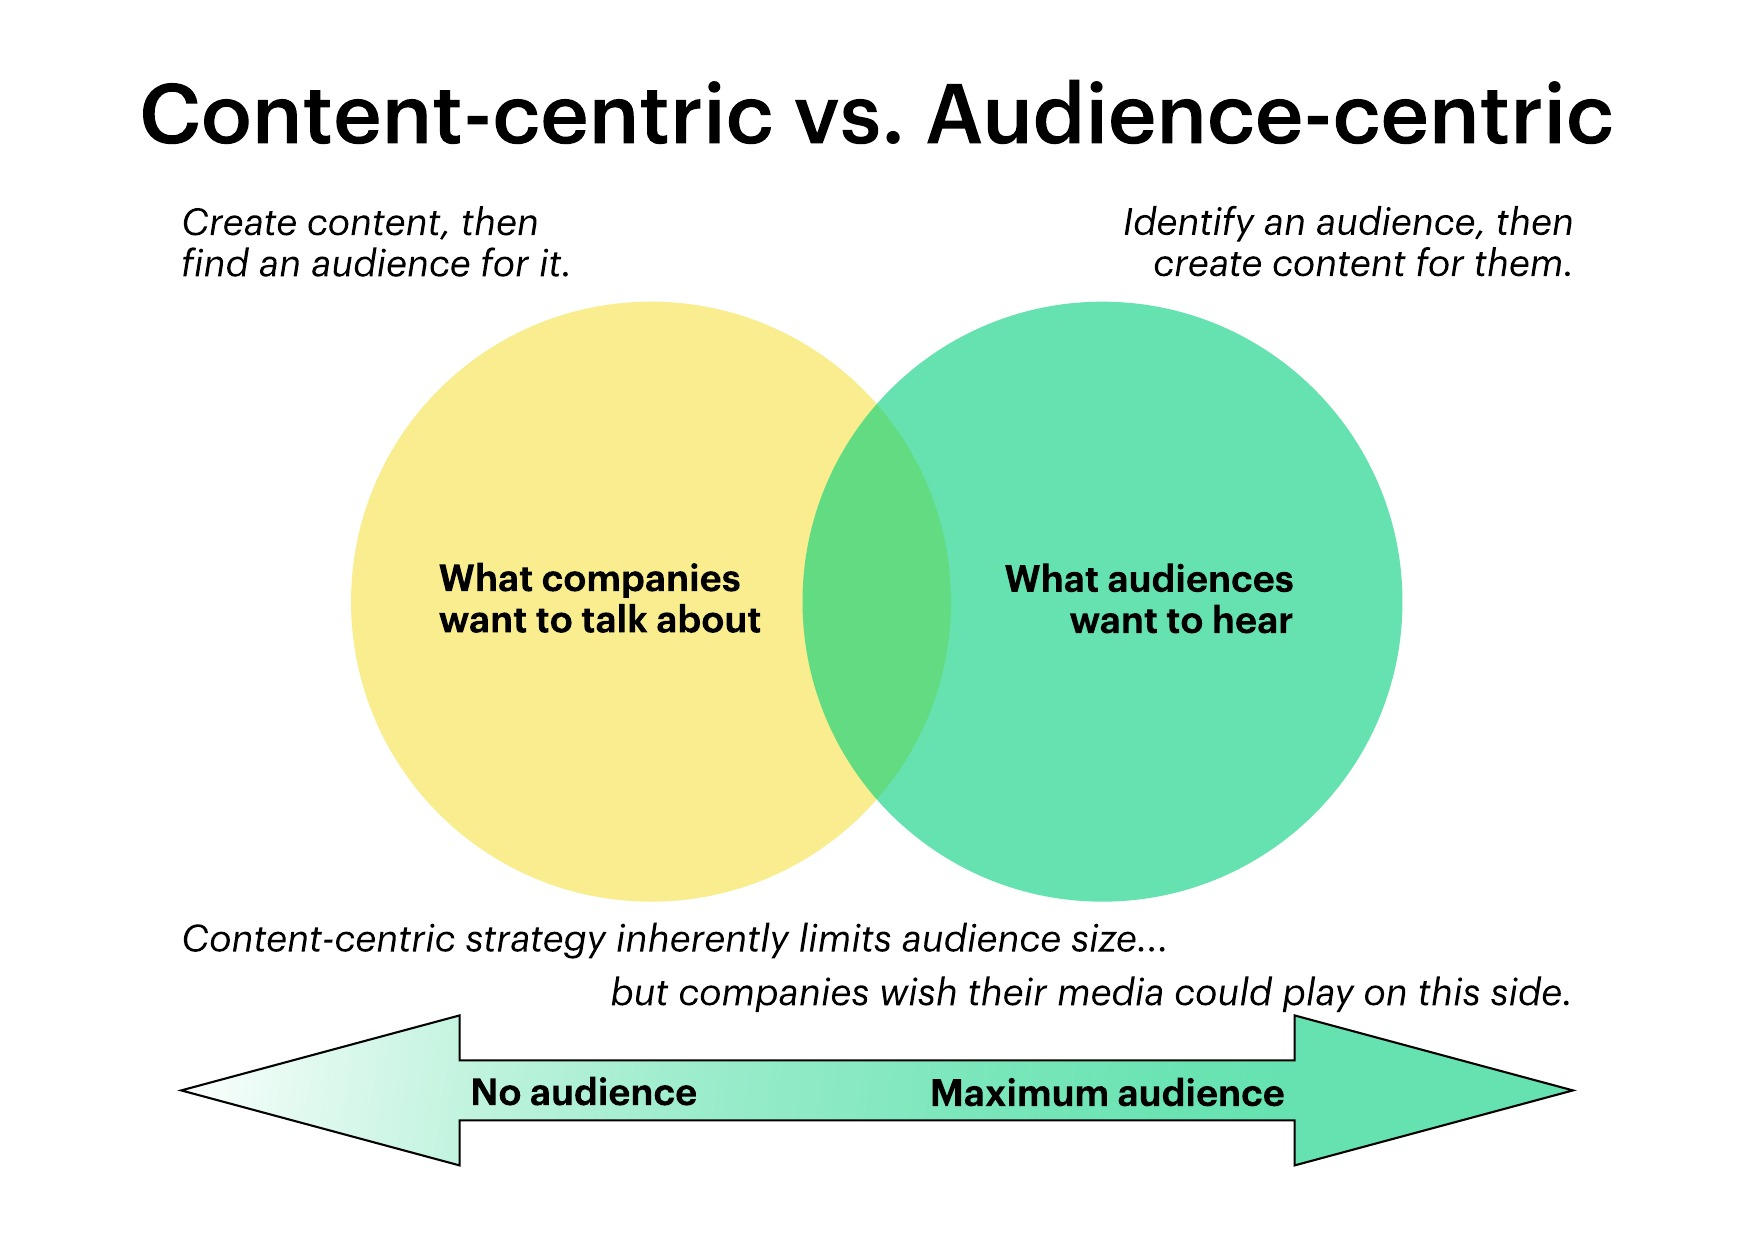 Content-centric vs. audience centric